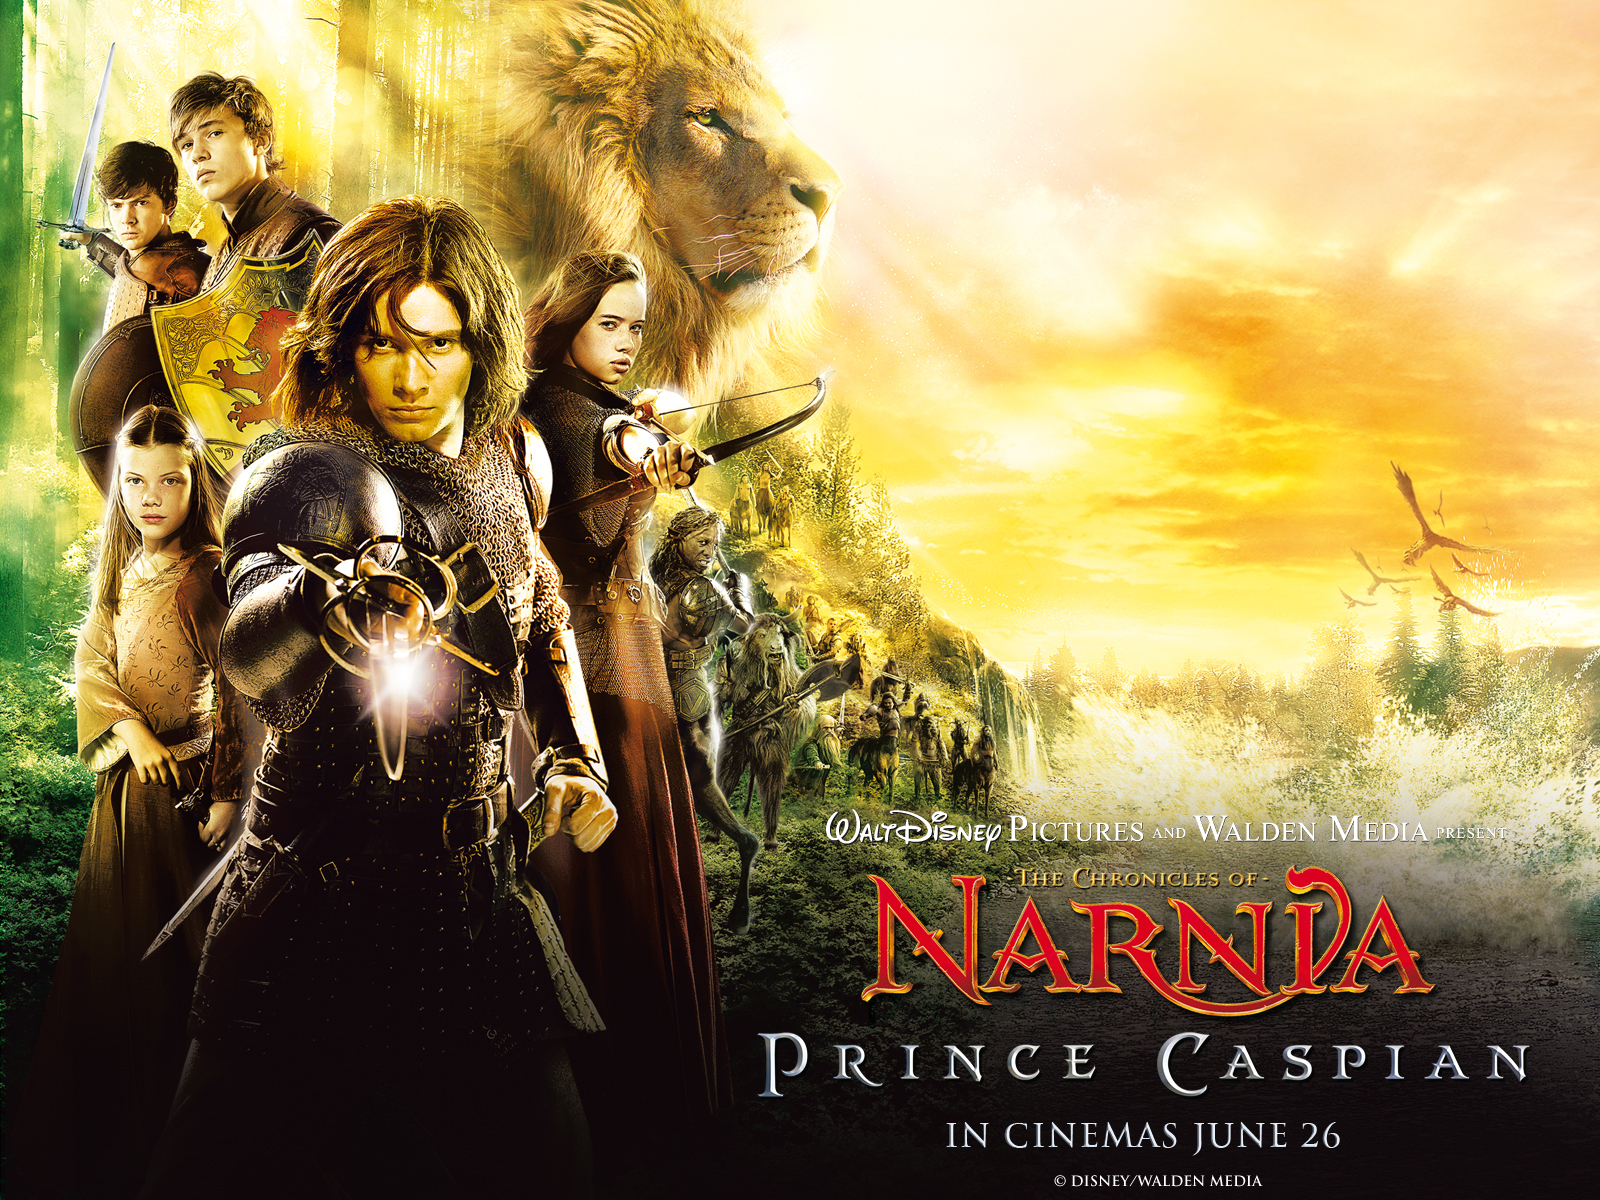 The Chronicles of Narnia Prince Caspian Wallpapers and Background 1600x1200